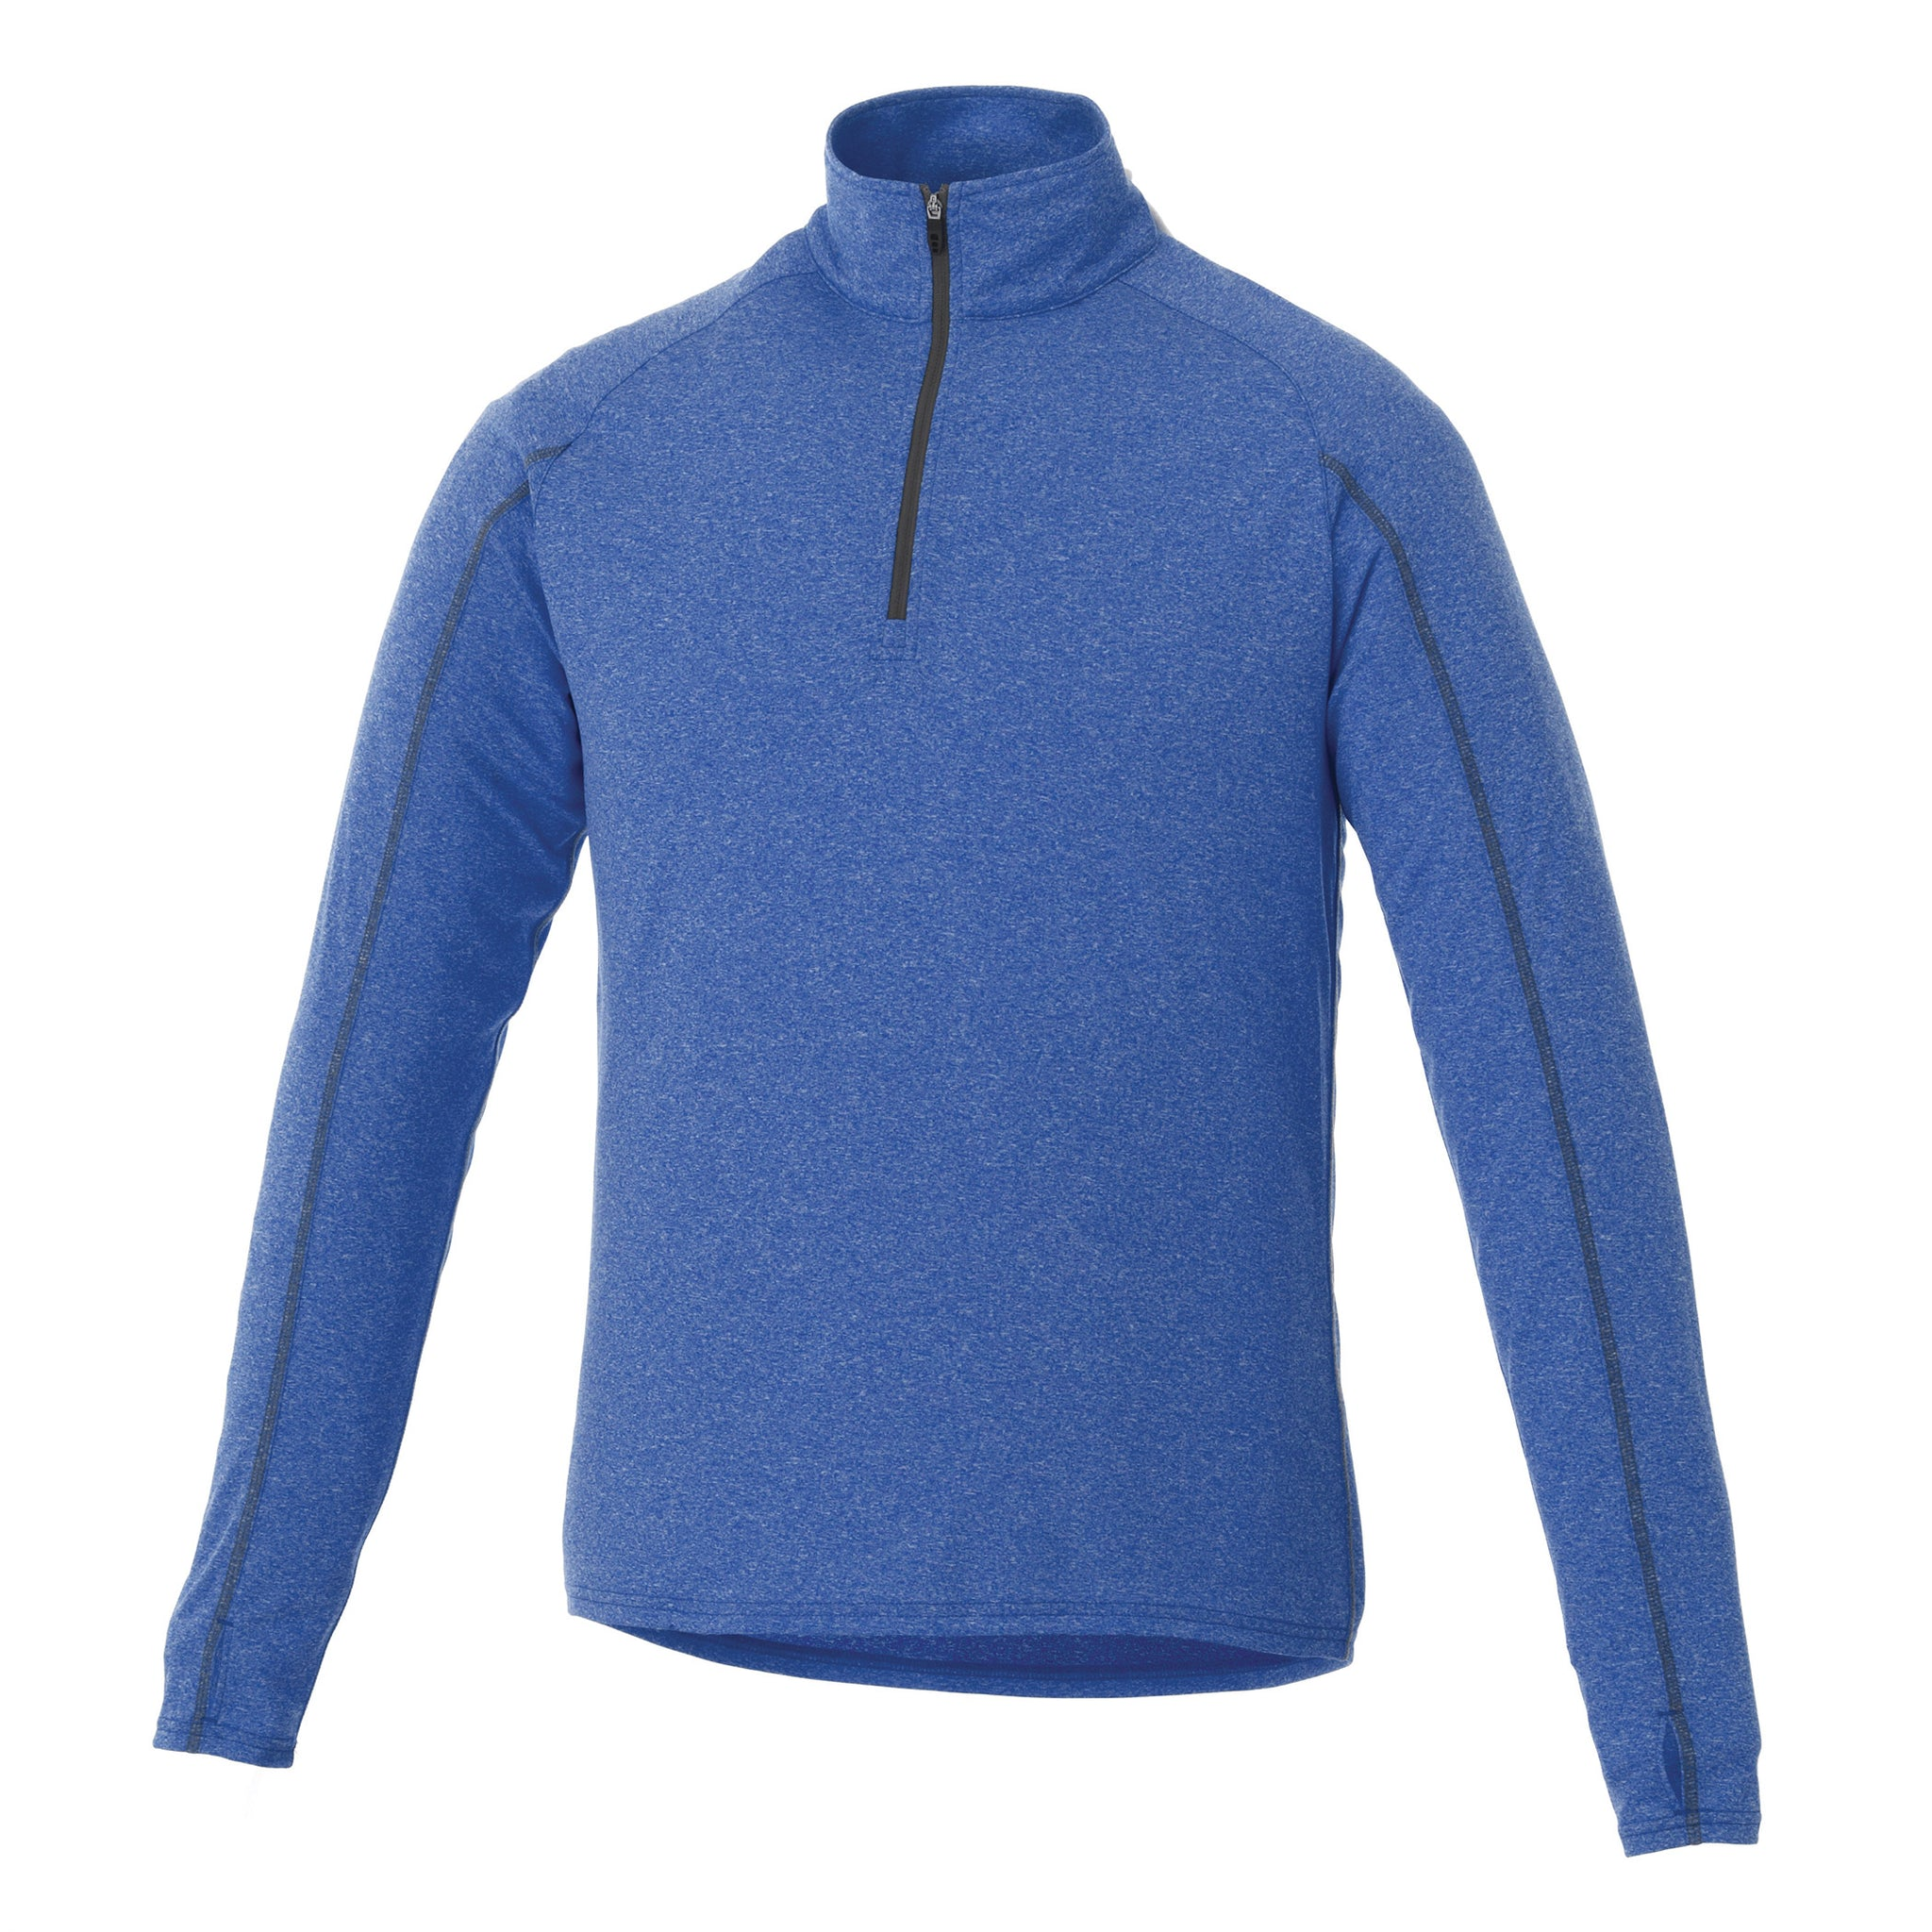 ELEVATE MEN'S TAZA KNIT QUARTER ZIP